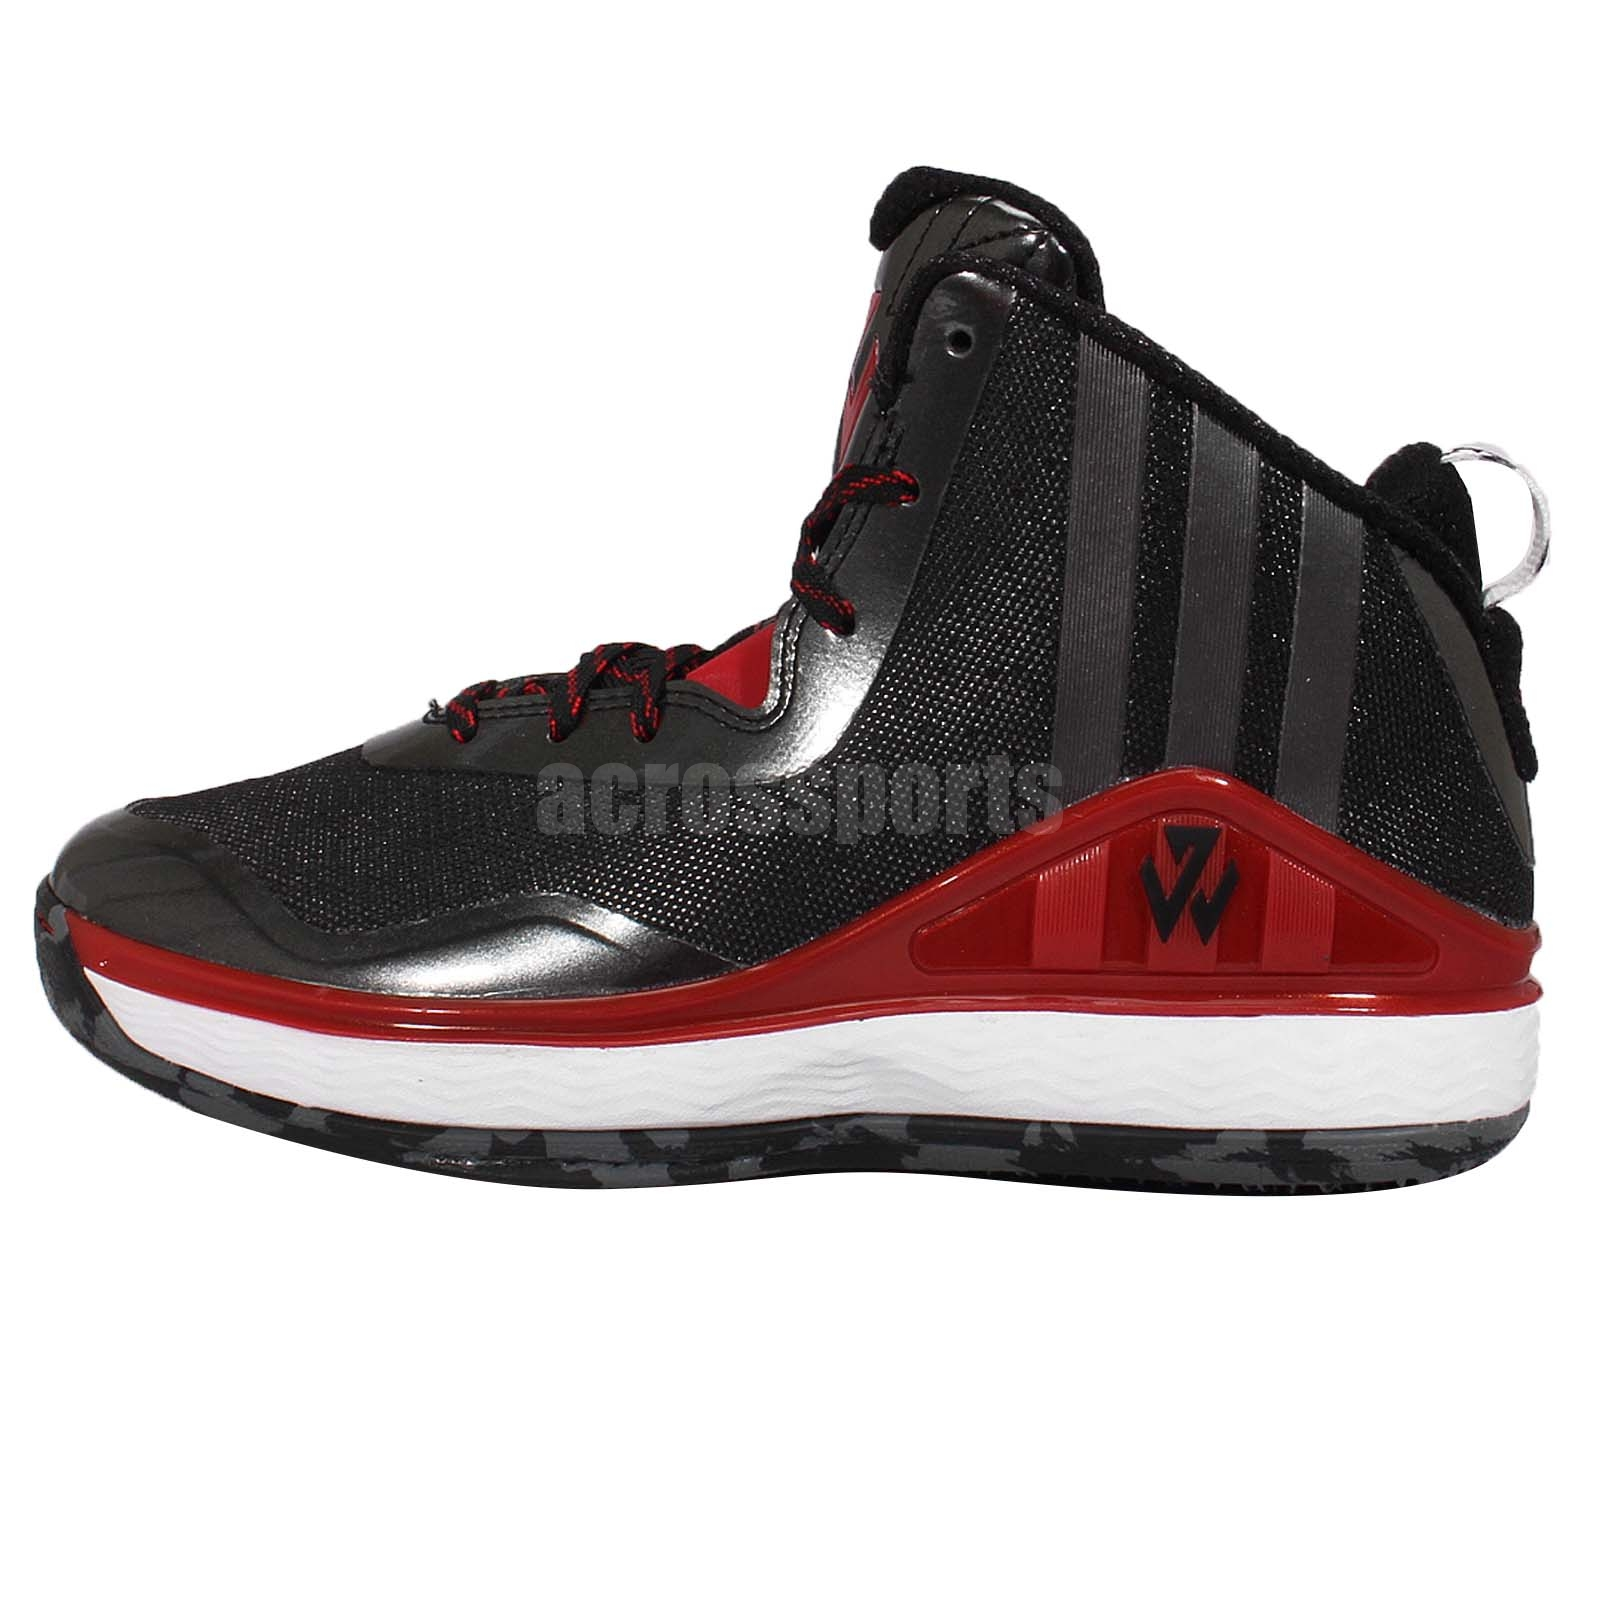 John Wall Shoes For Sale